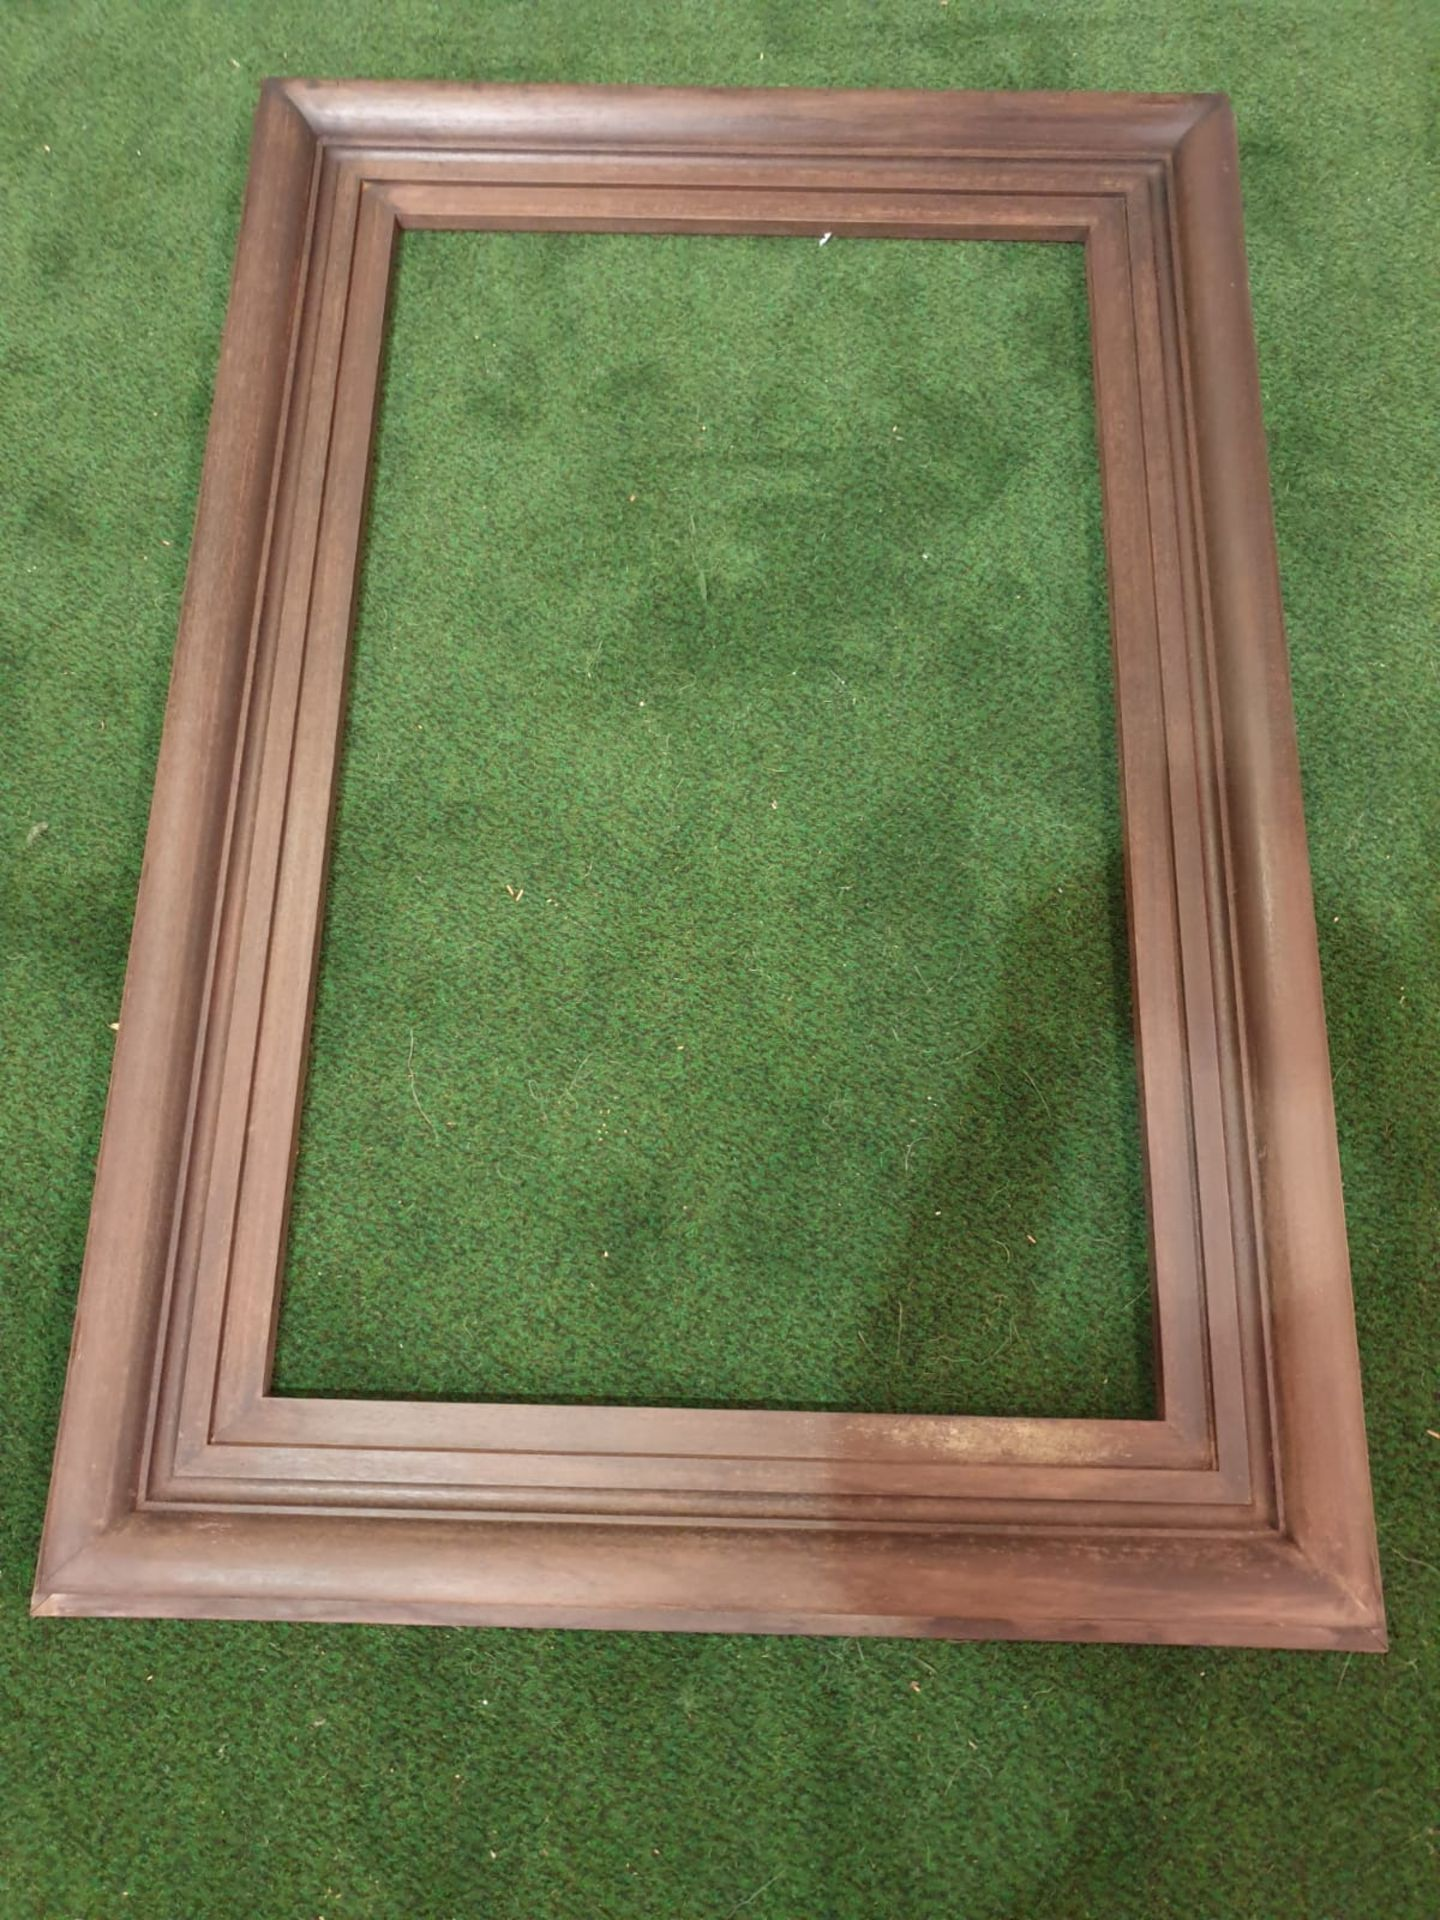 Brown picture frame 80 x 116 cm - Image 2 of 2